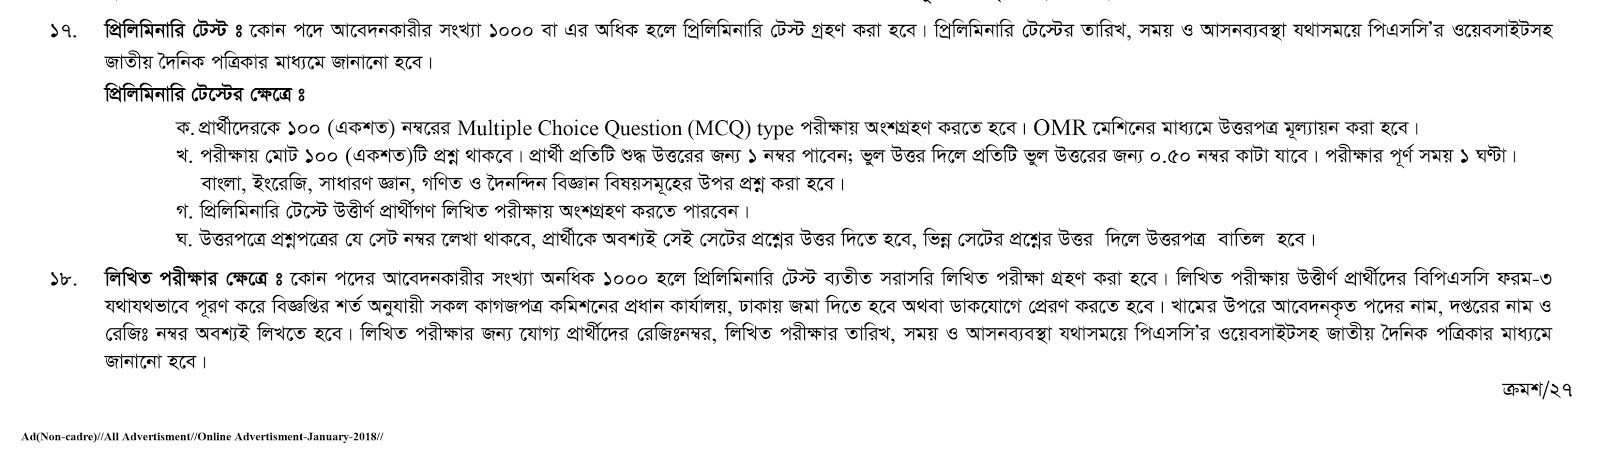 Bangladesh Public Service Commission (BPSC) Non Cadre Recruitment 2018 Mark Distribution